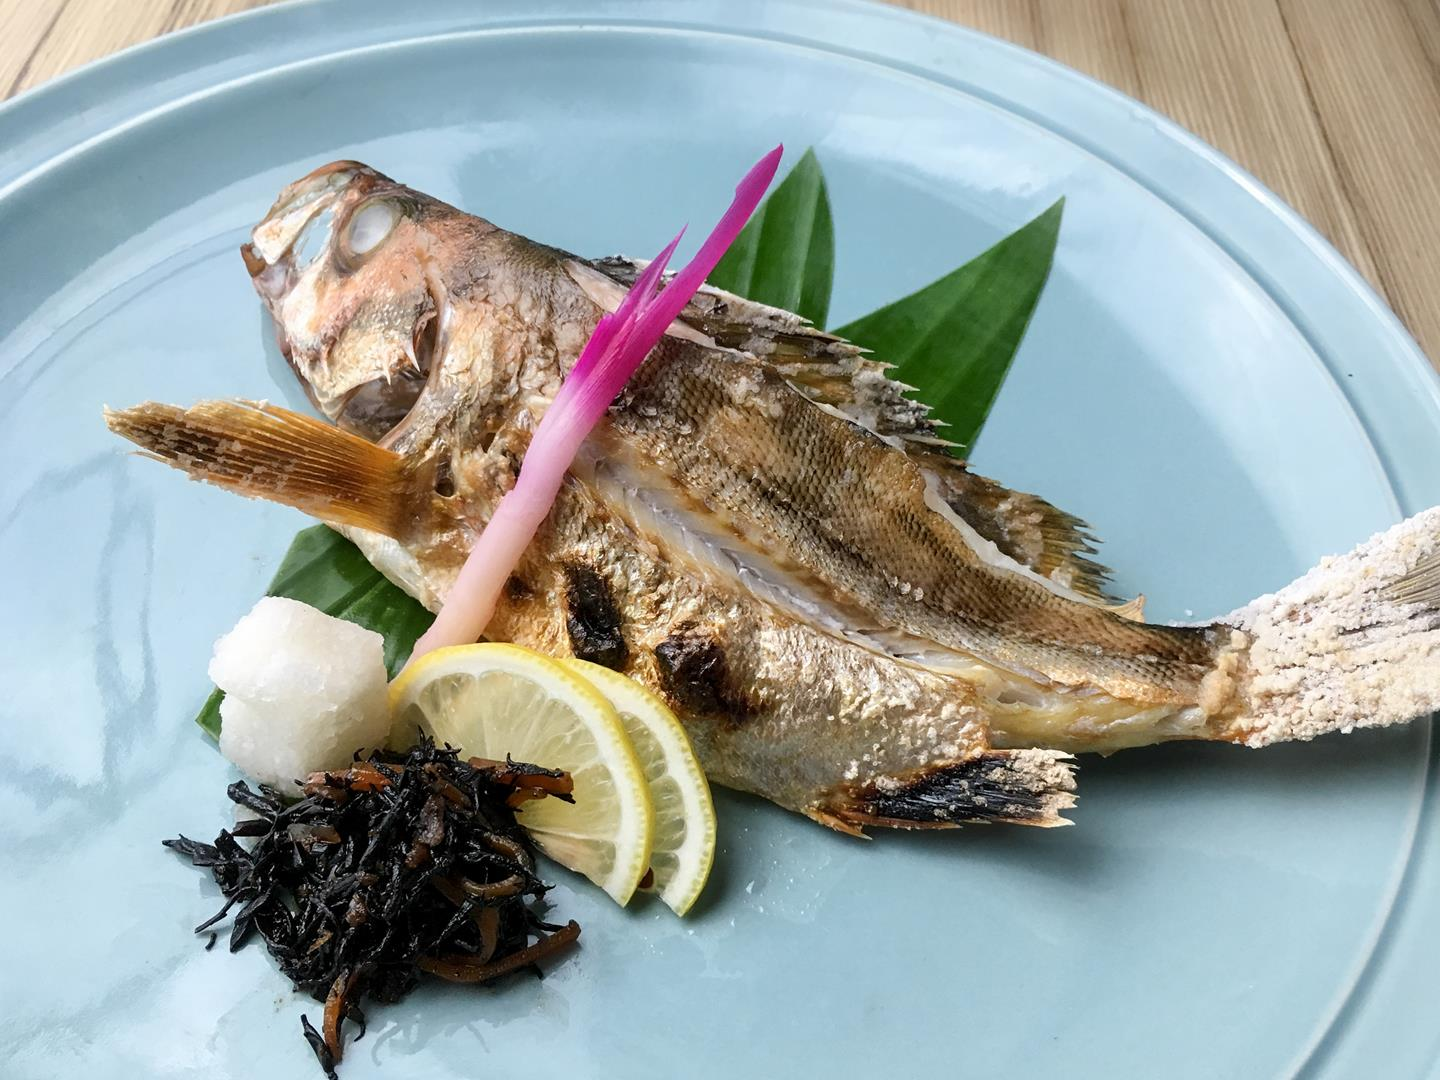 http://www.phtravelexpress.com/wp-content/uploads/2019/06/Mebaru-shioyaki-boiled-saltwater-fish-is-a-purists-delight.